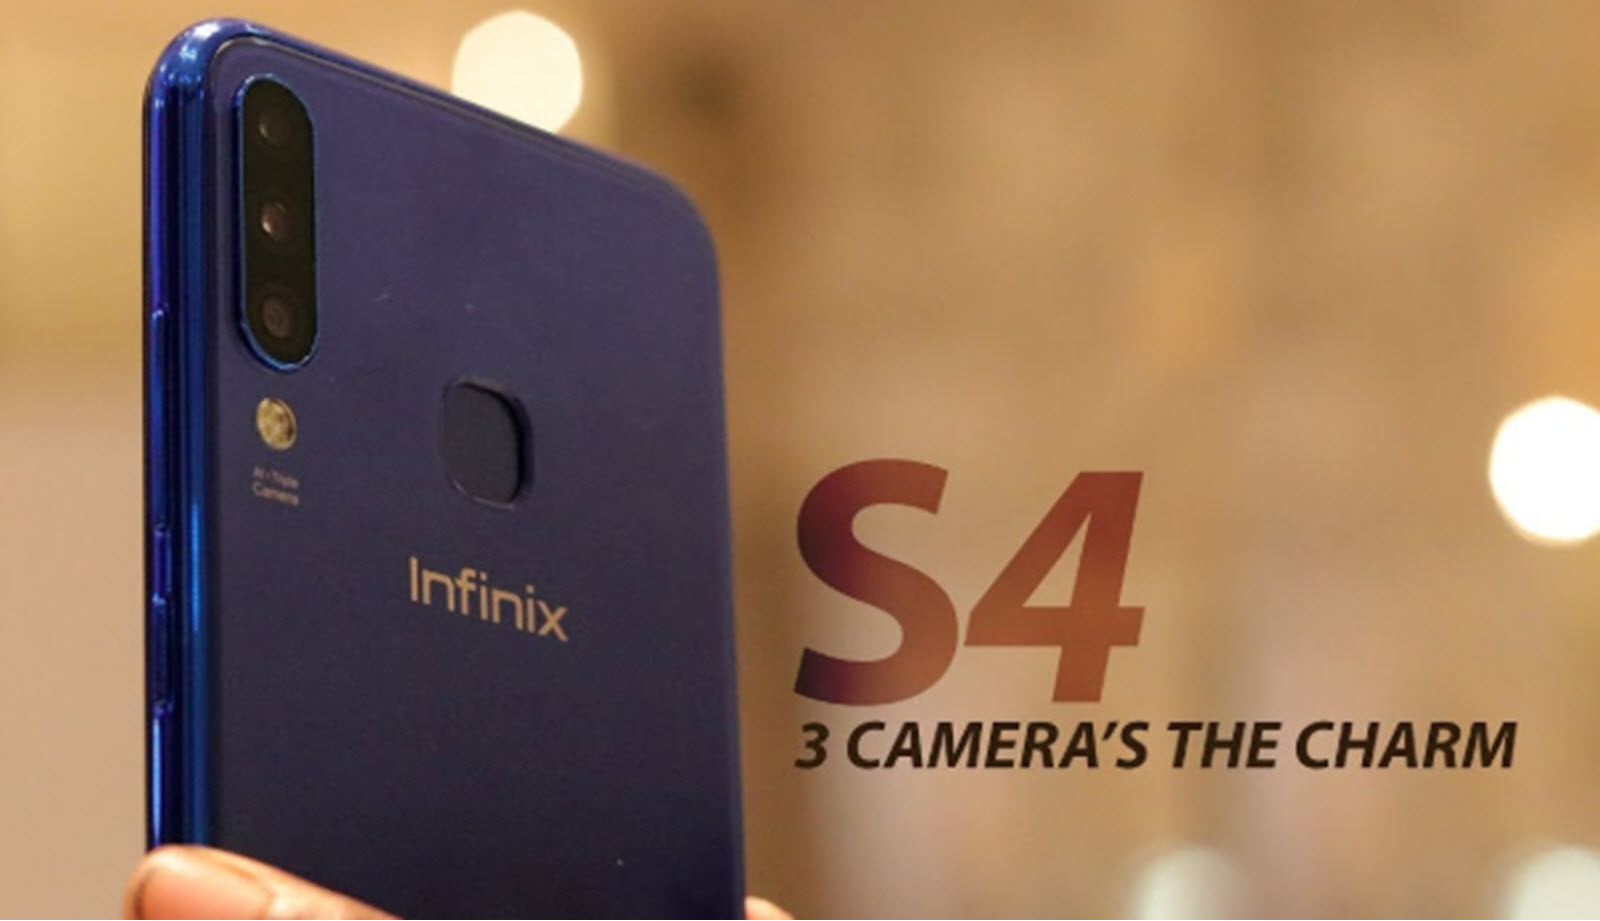 Infinix S4 now available in Kenya, here is the price and